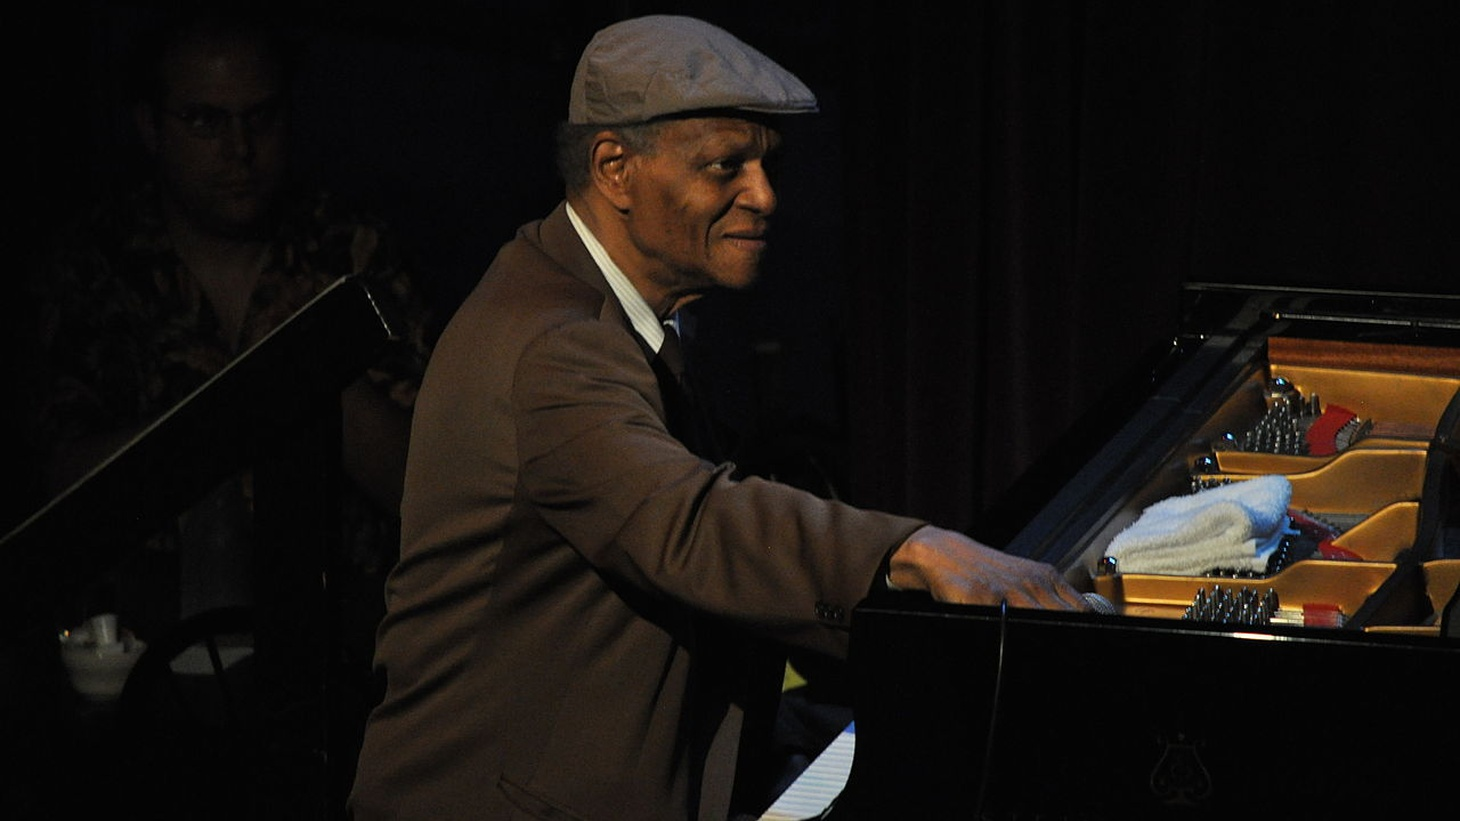 McCoy Tyner with his quartet at Jazz Alley, Seattle, 2012